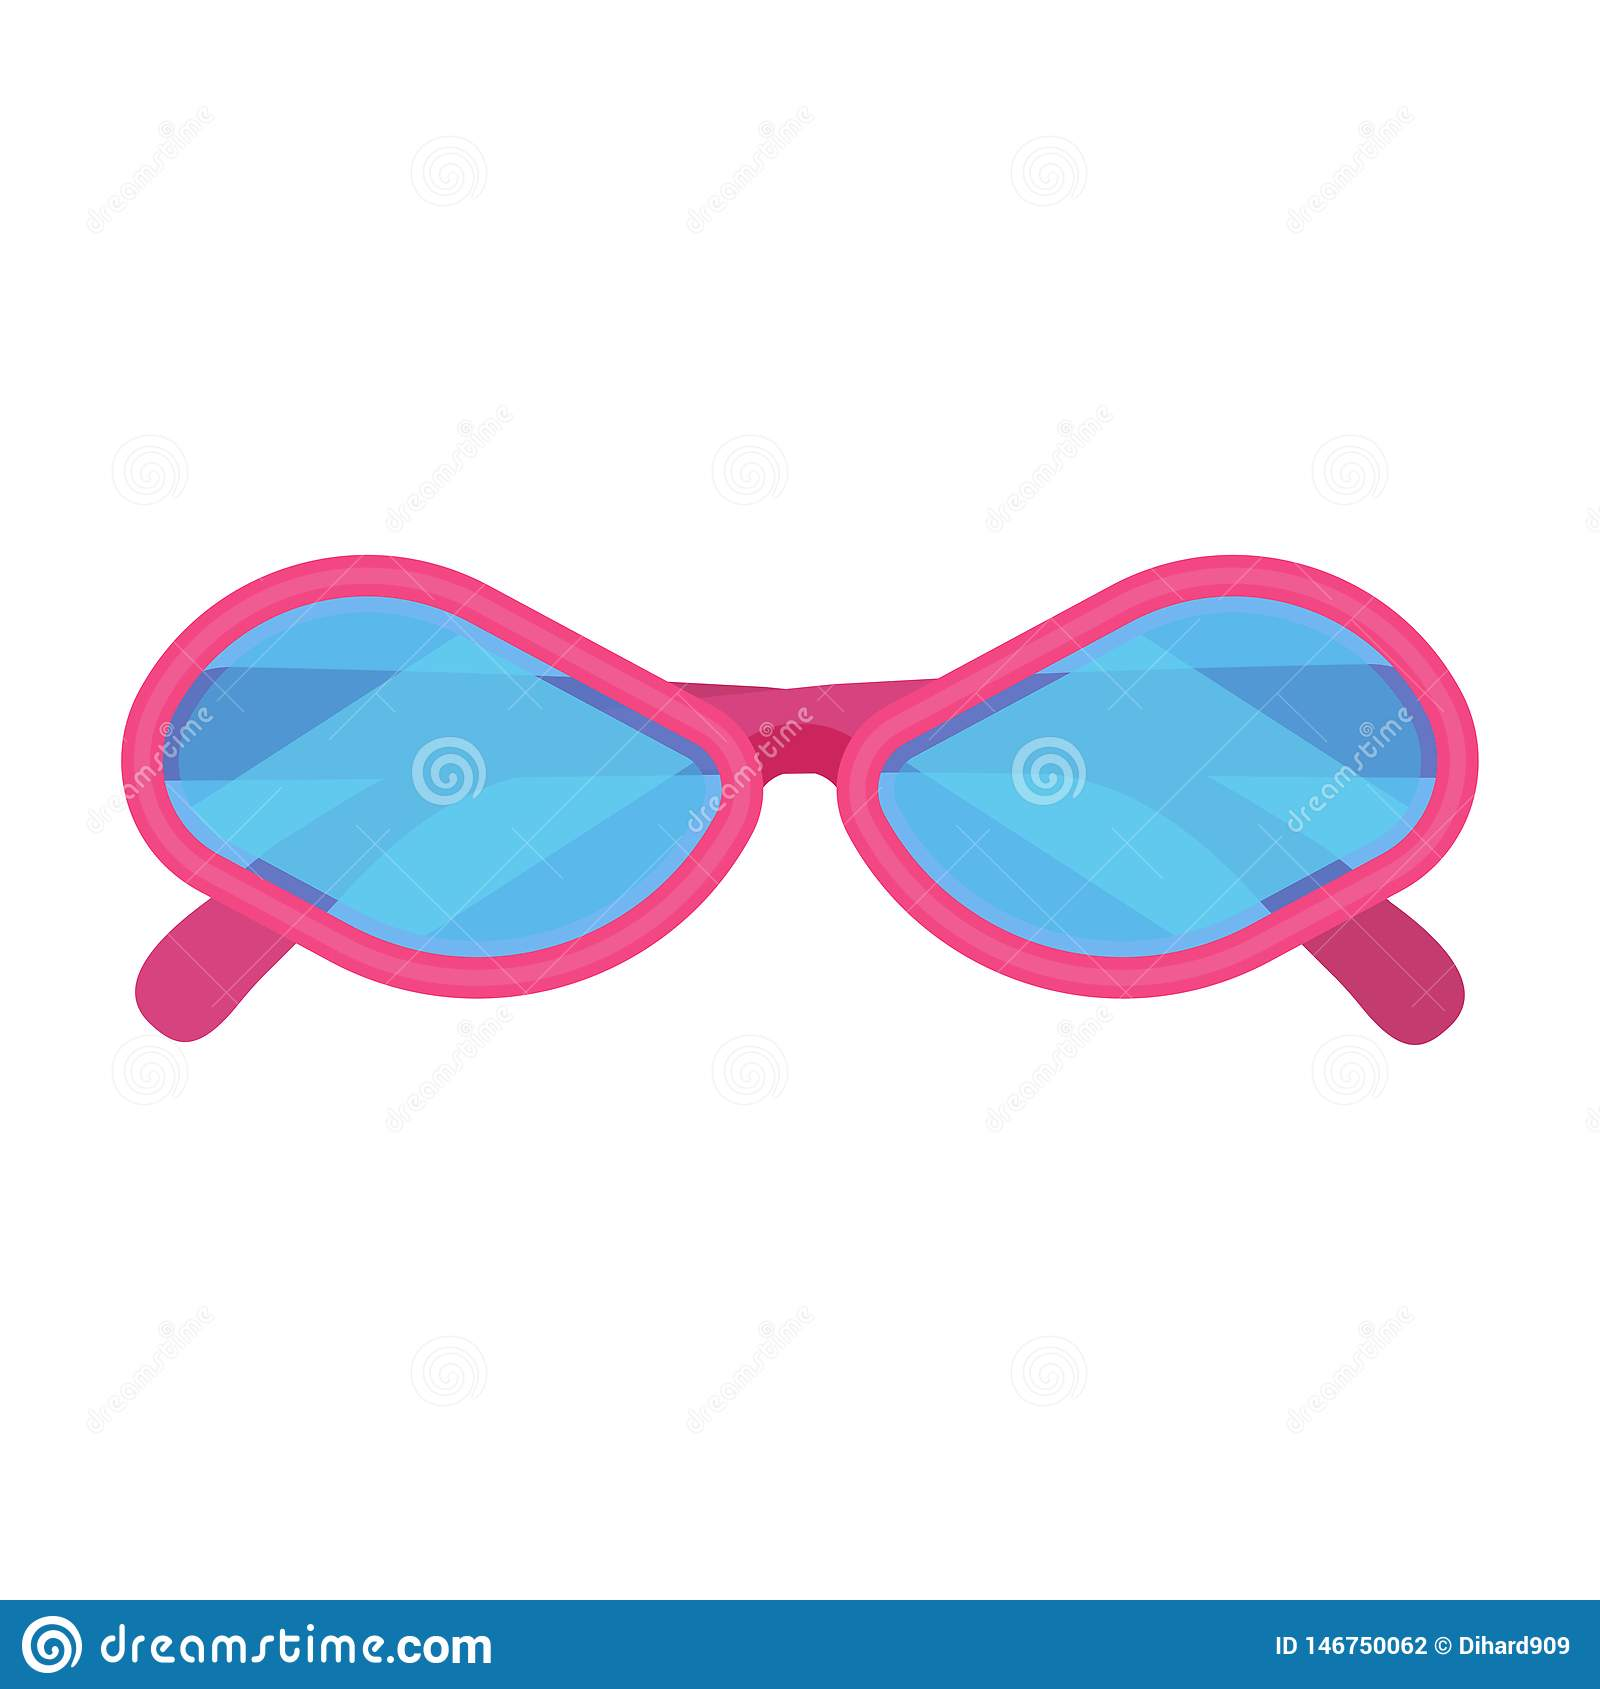 Sunglass fashion vector icon accessory pink frame. Isolated eye lens protection summer. Cartoon hipster funny vacation